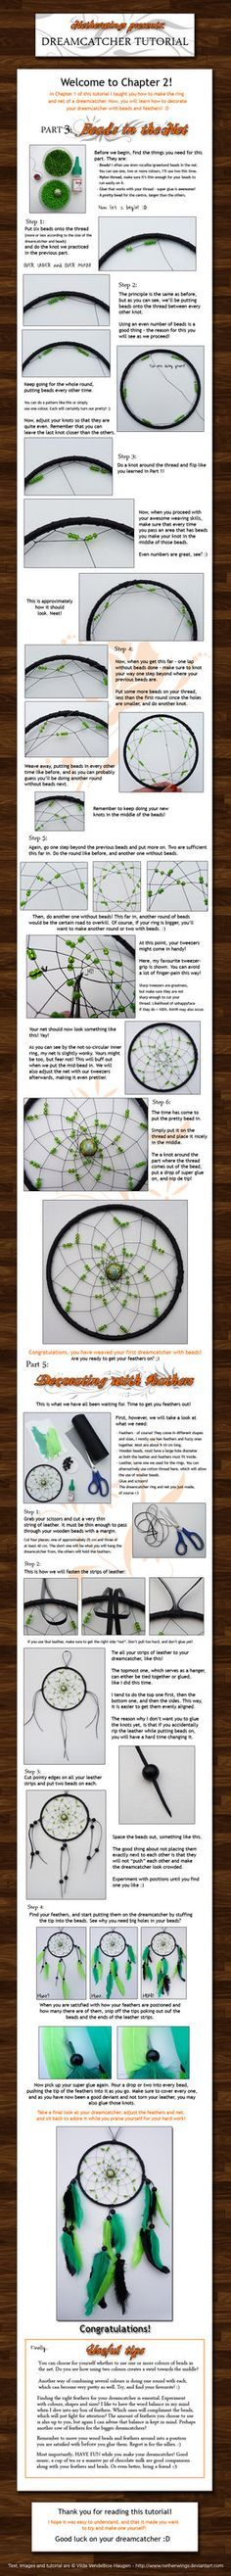 Dreamcatcher tutorial: Ch. 2 by ~netherwings on deviantART